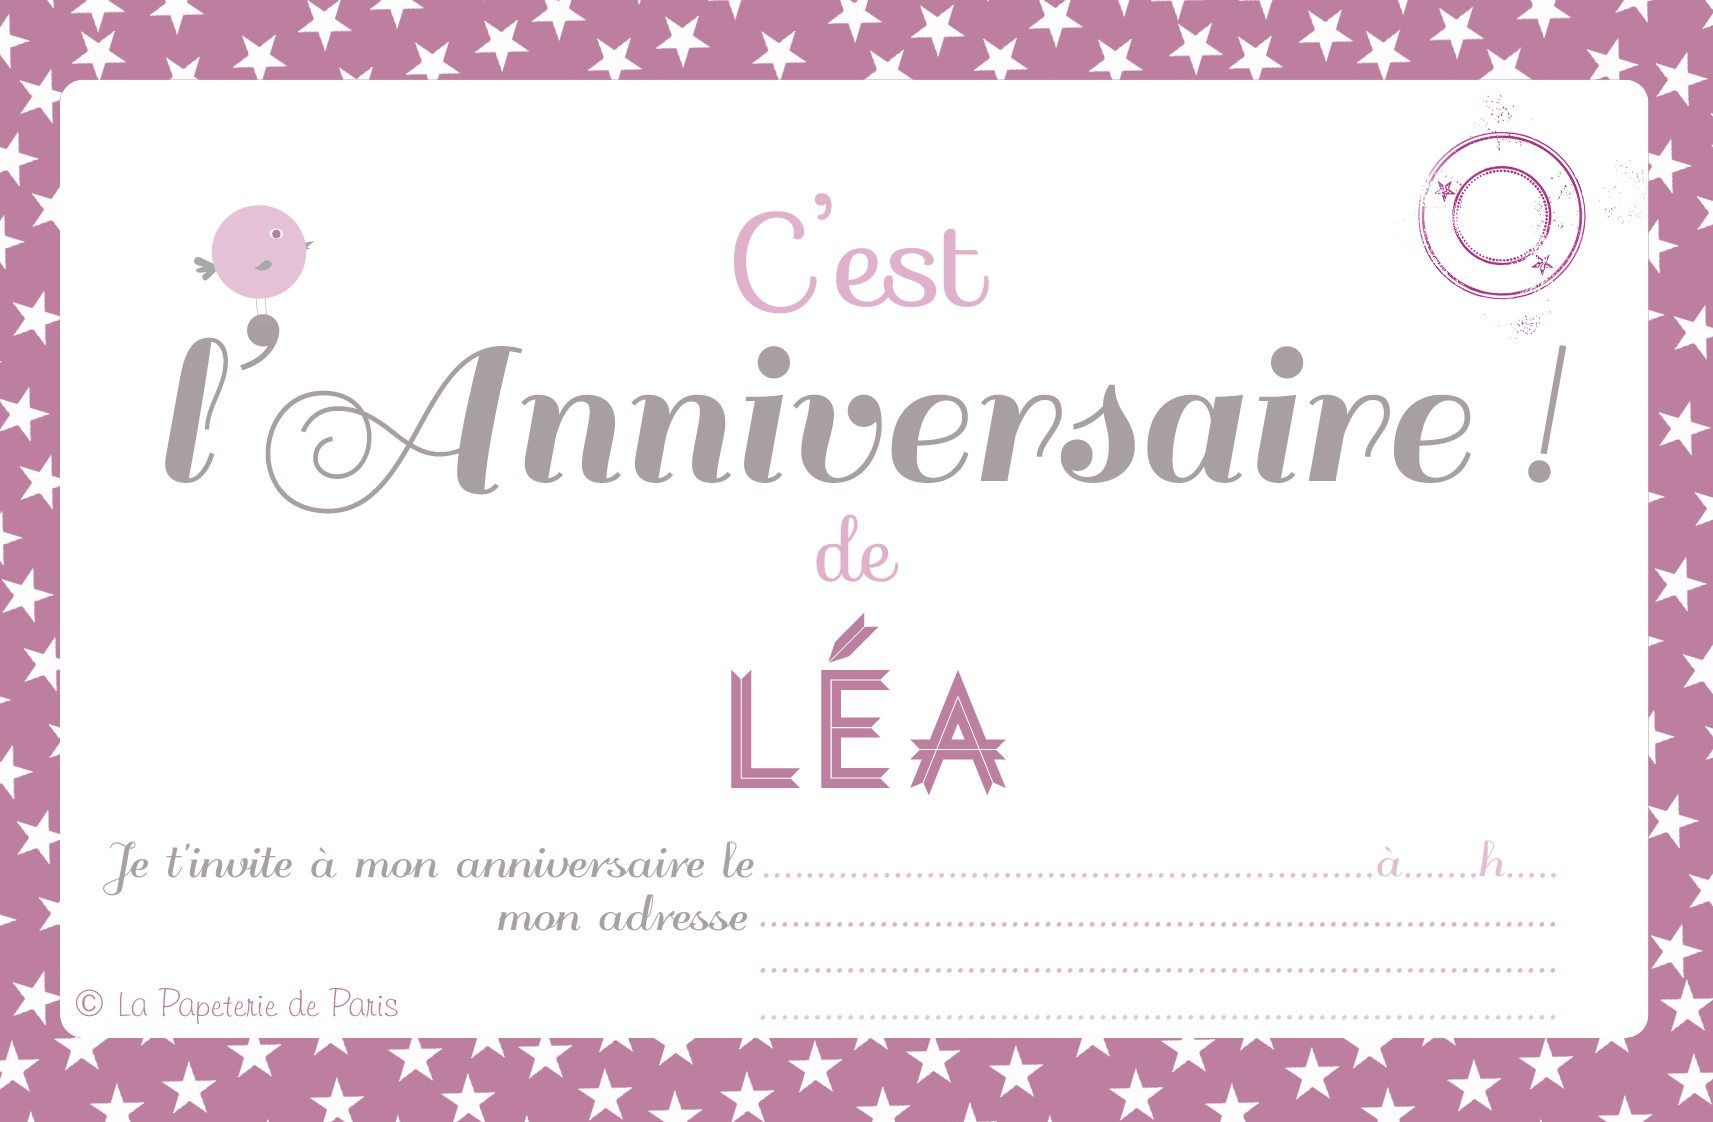 Berühmt carte invitation anniversaire imprimer : Carte invitation  UP88